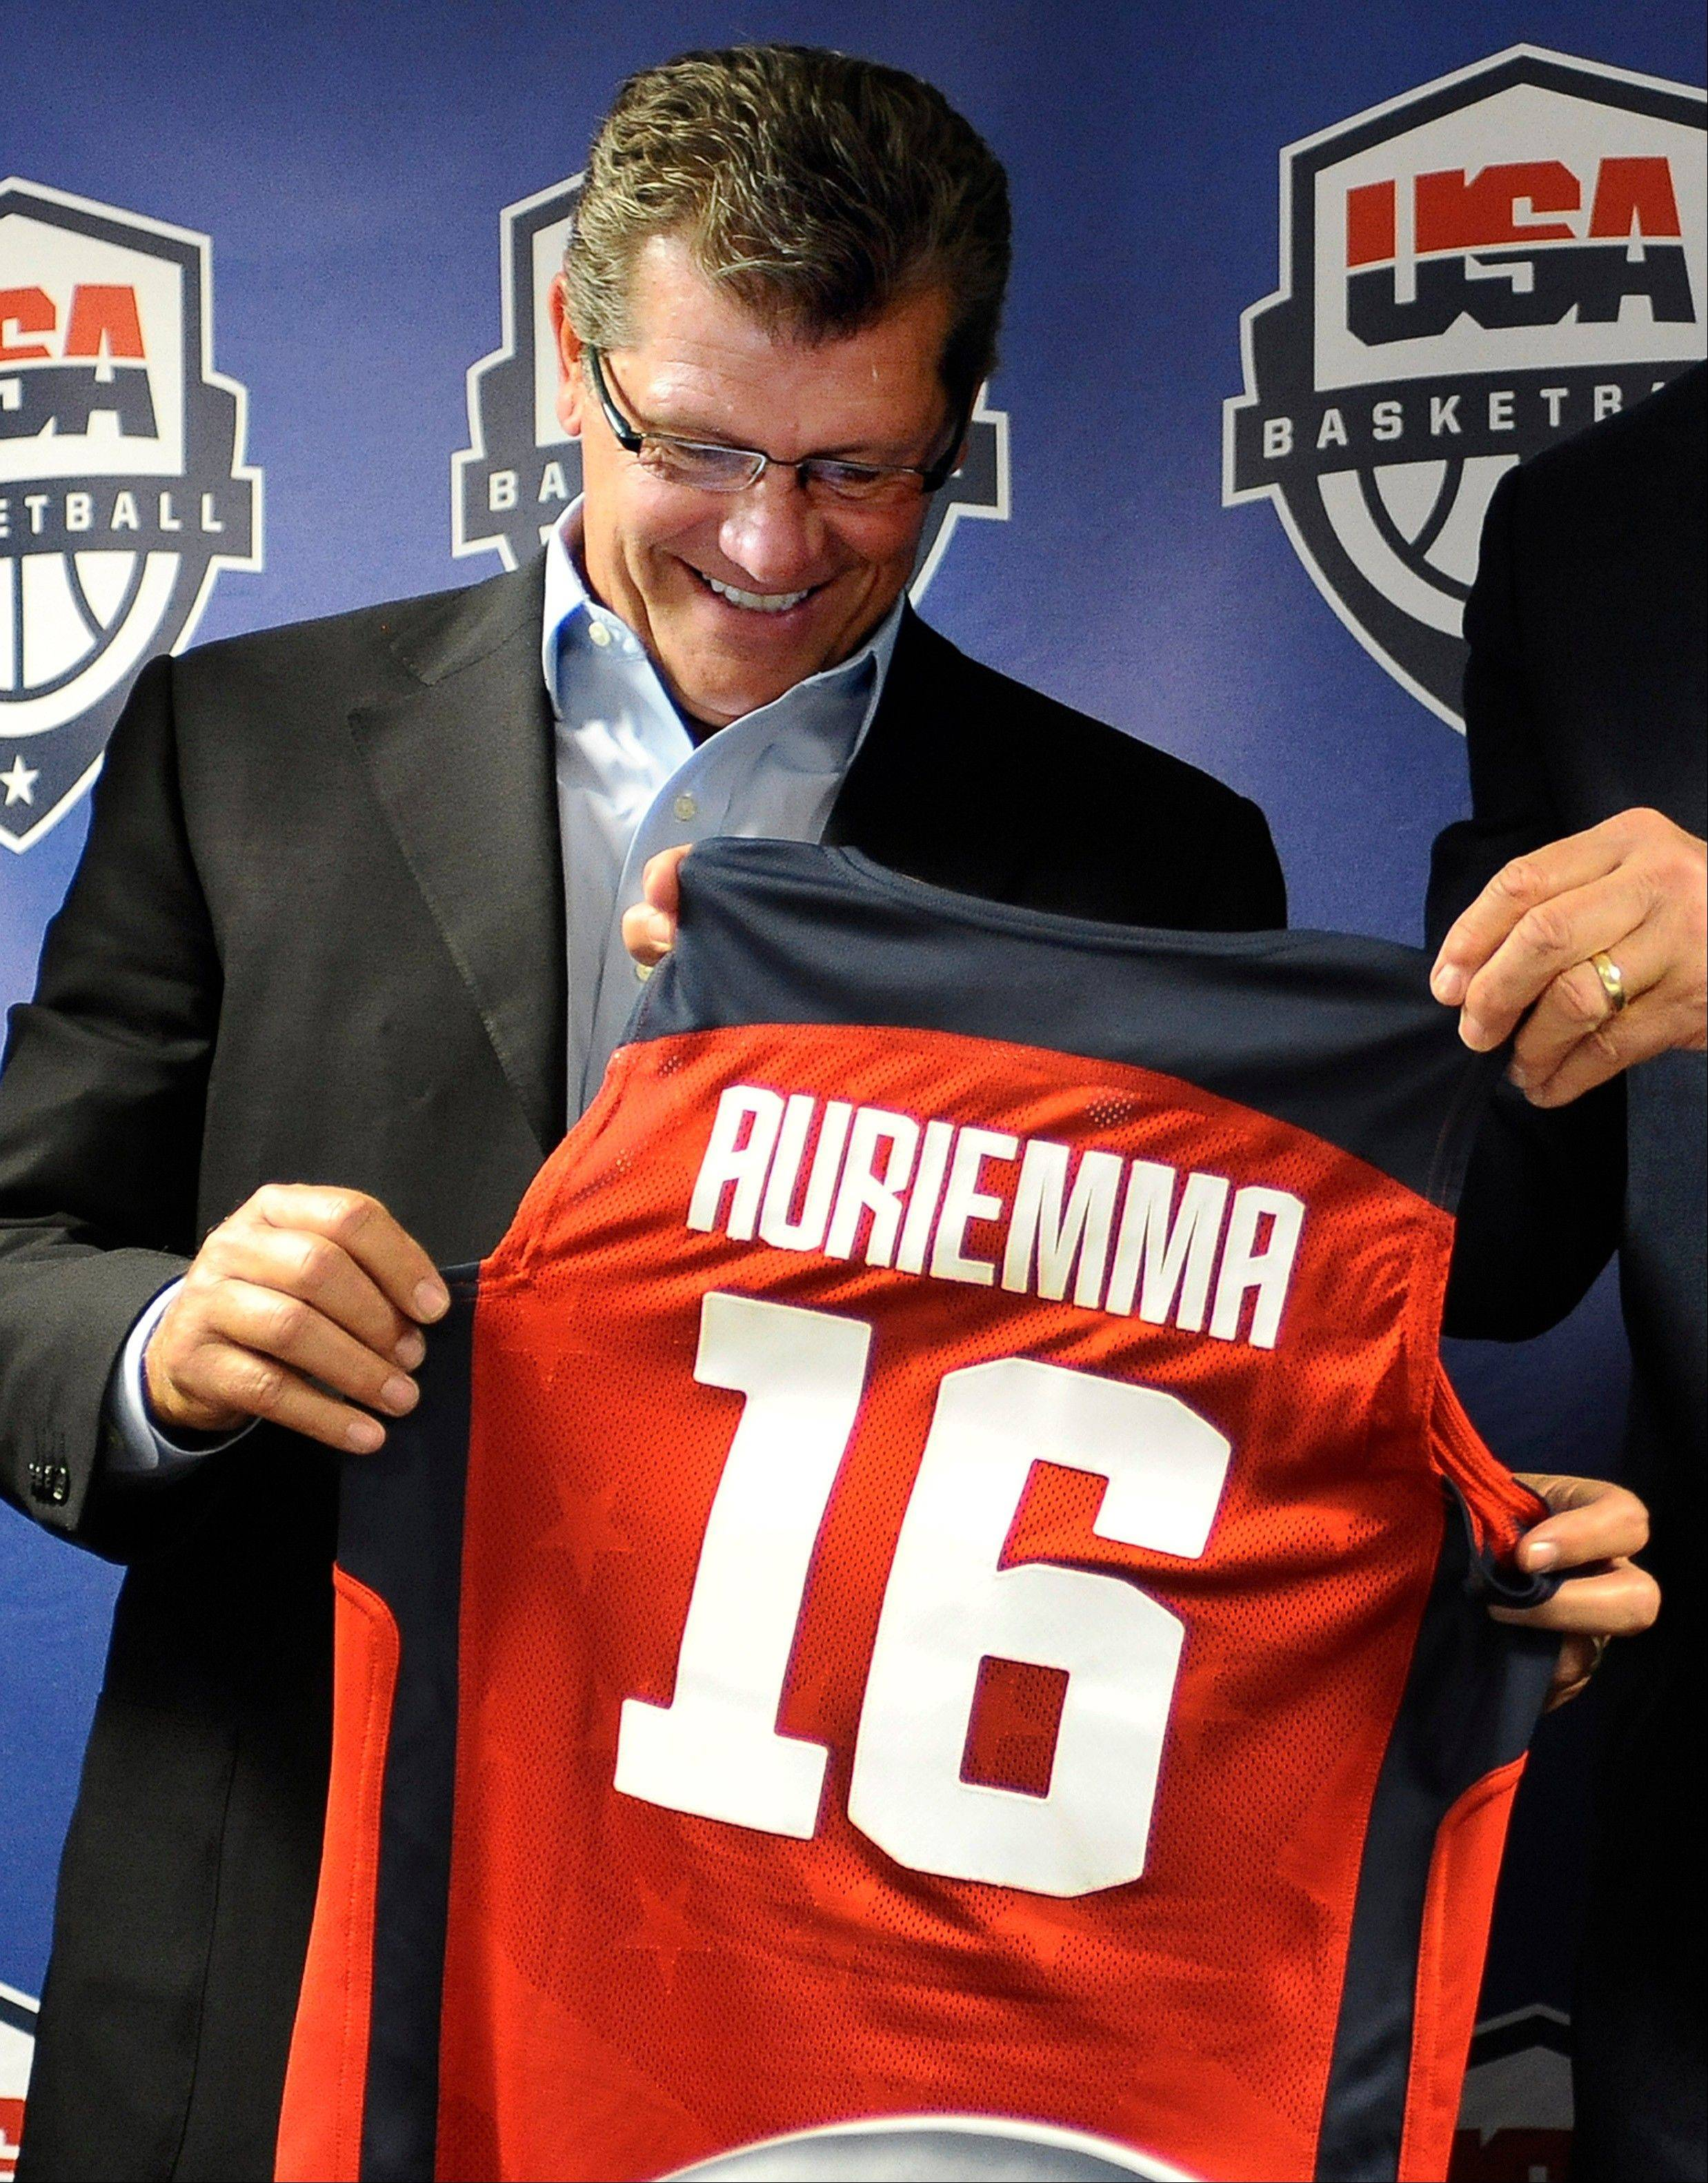 Connecticut head coach Geno Auriemma smiles after receiving a team jersey Friday at a news conference announcing he will head the U.S. women's basketball team at the 2016 Rio de Janeiro Olympics.